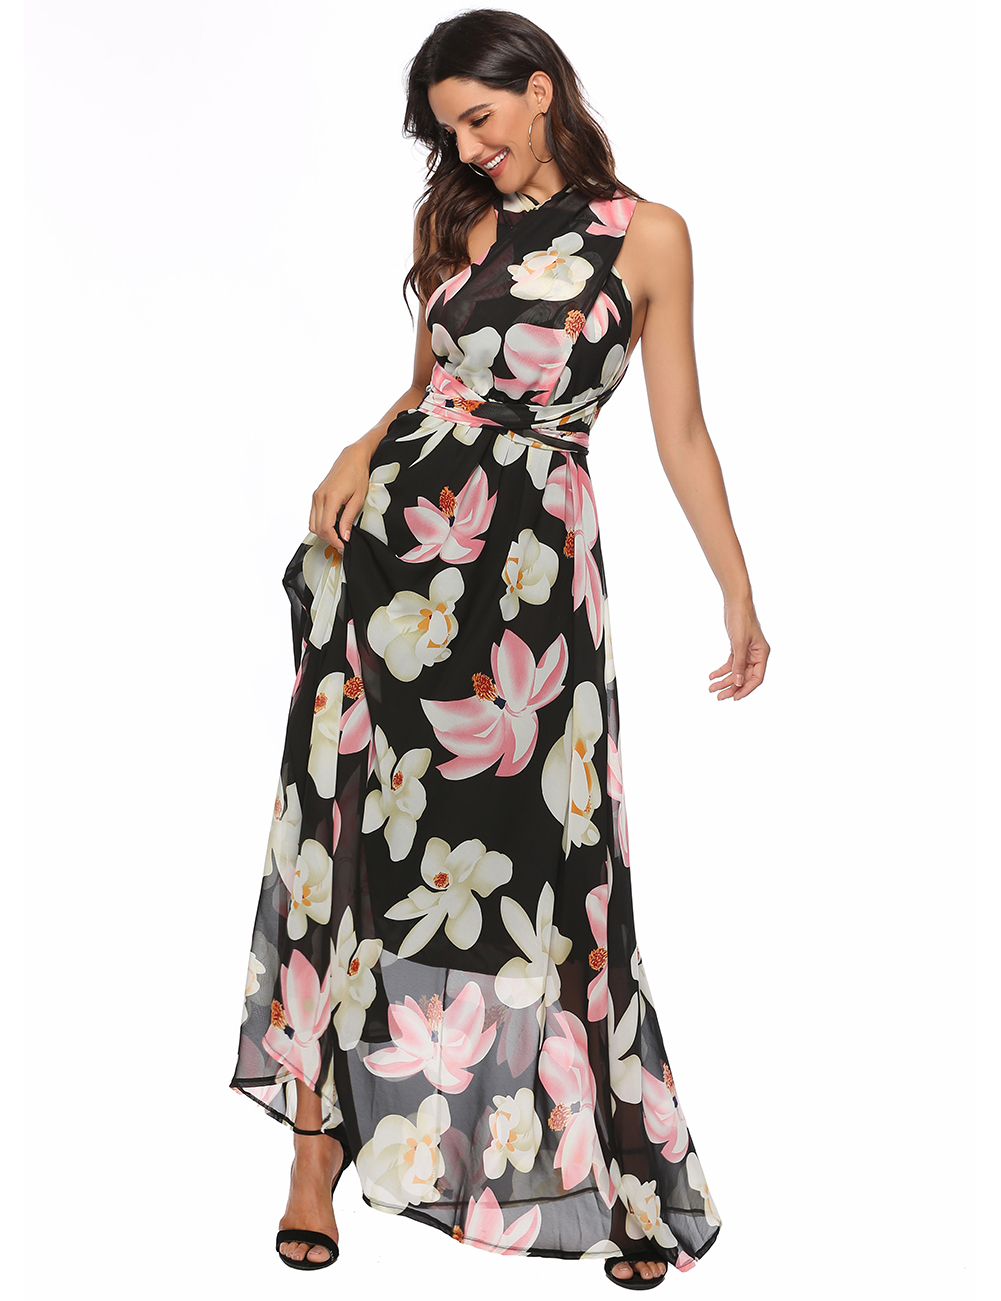 //cdn.affectcloud.com/hexinfashion/upload/imgs/Dress/Maxi_Dress/VZ190607-M03/VZ190607-M03-201911055dc123246d141.jpg